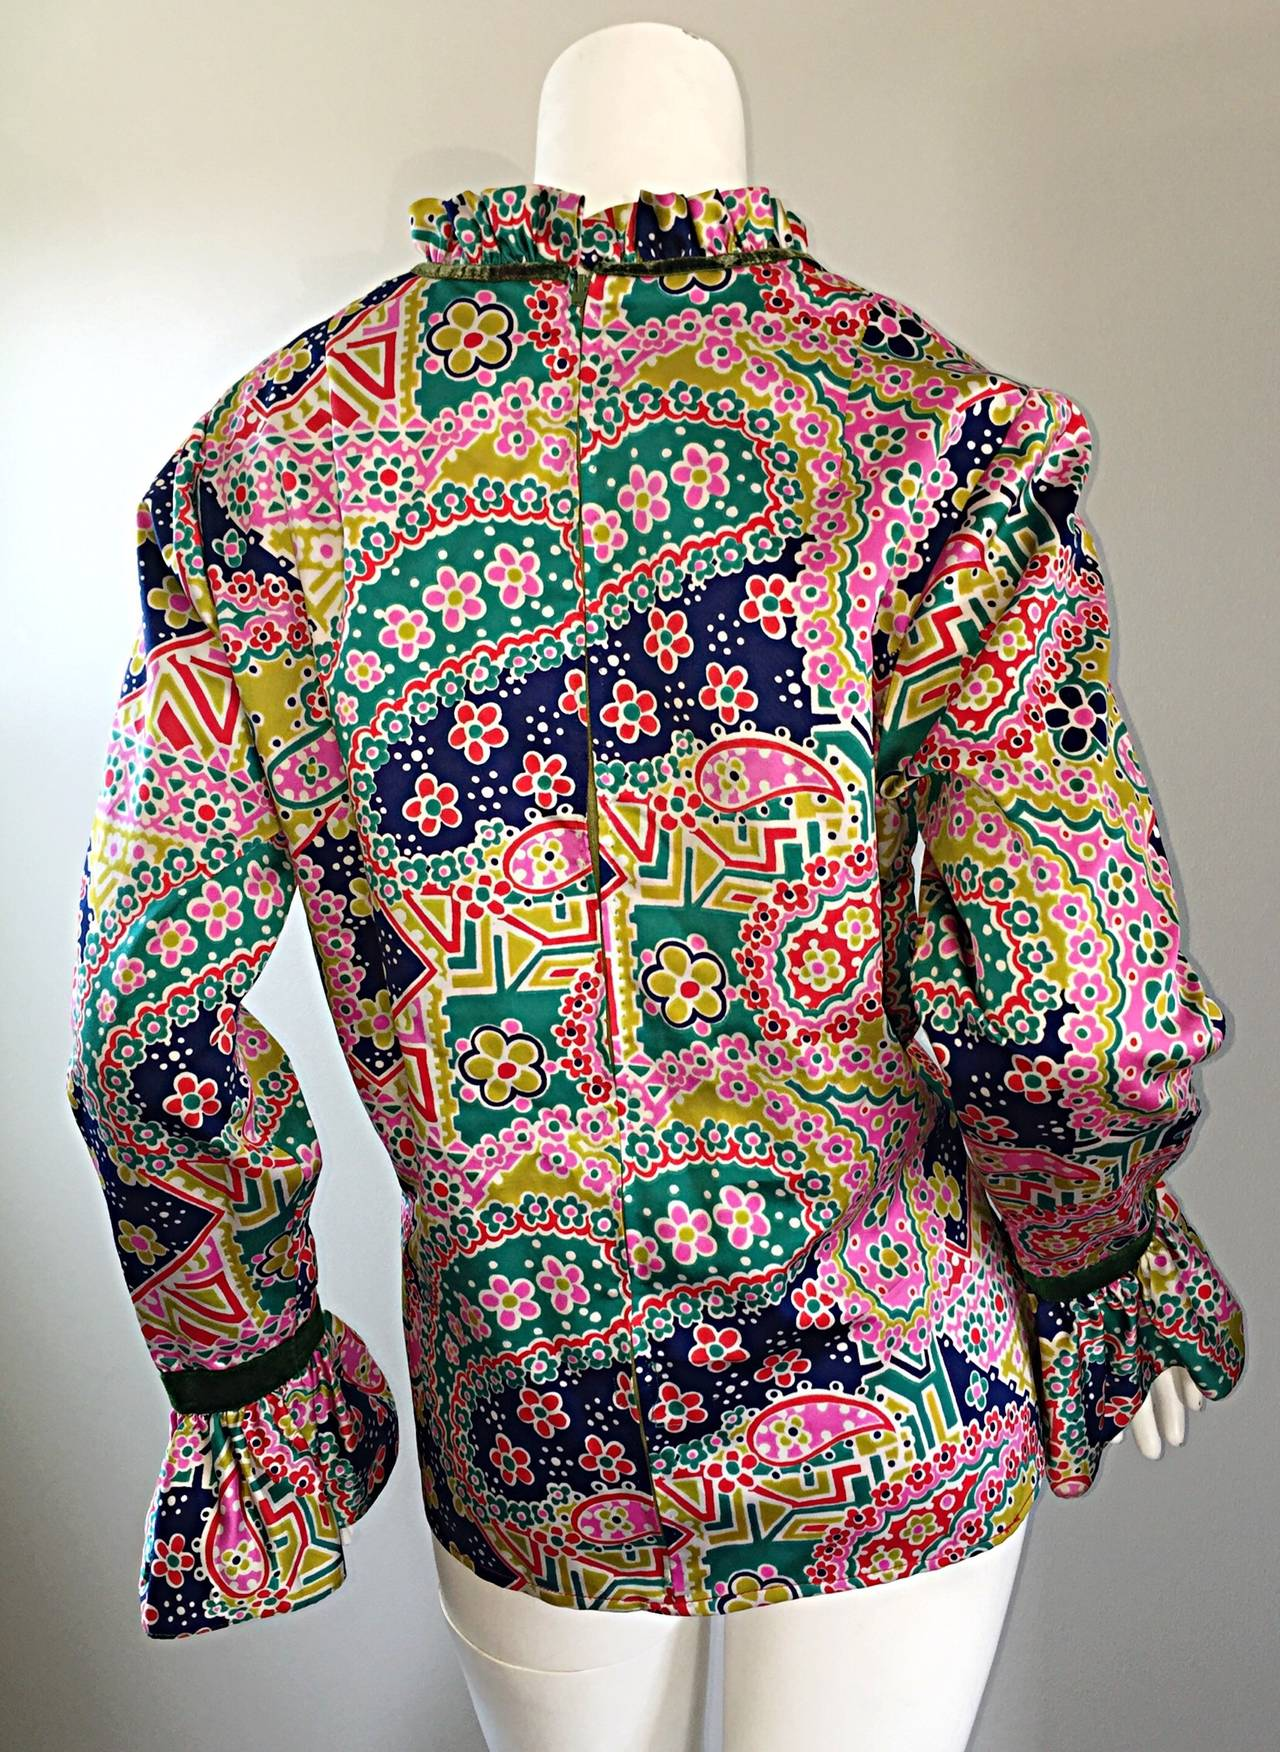 Psychedelic 1970s 70s Paisley + Floral Multi - Color Boho Top / Blouse / Tunic In Excellent Condition For Sale In San Francisco, CA